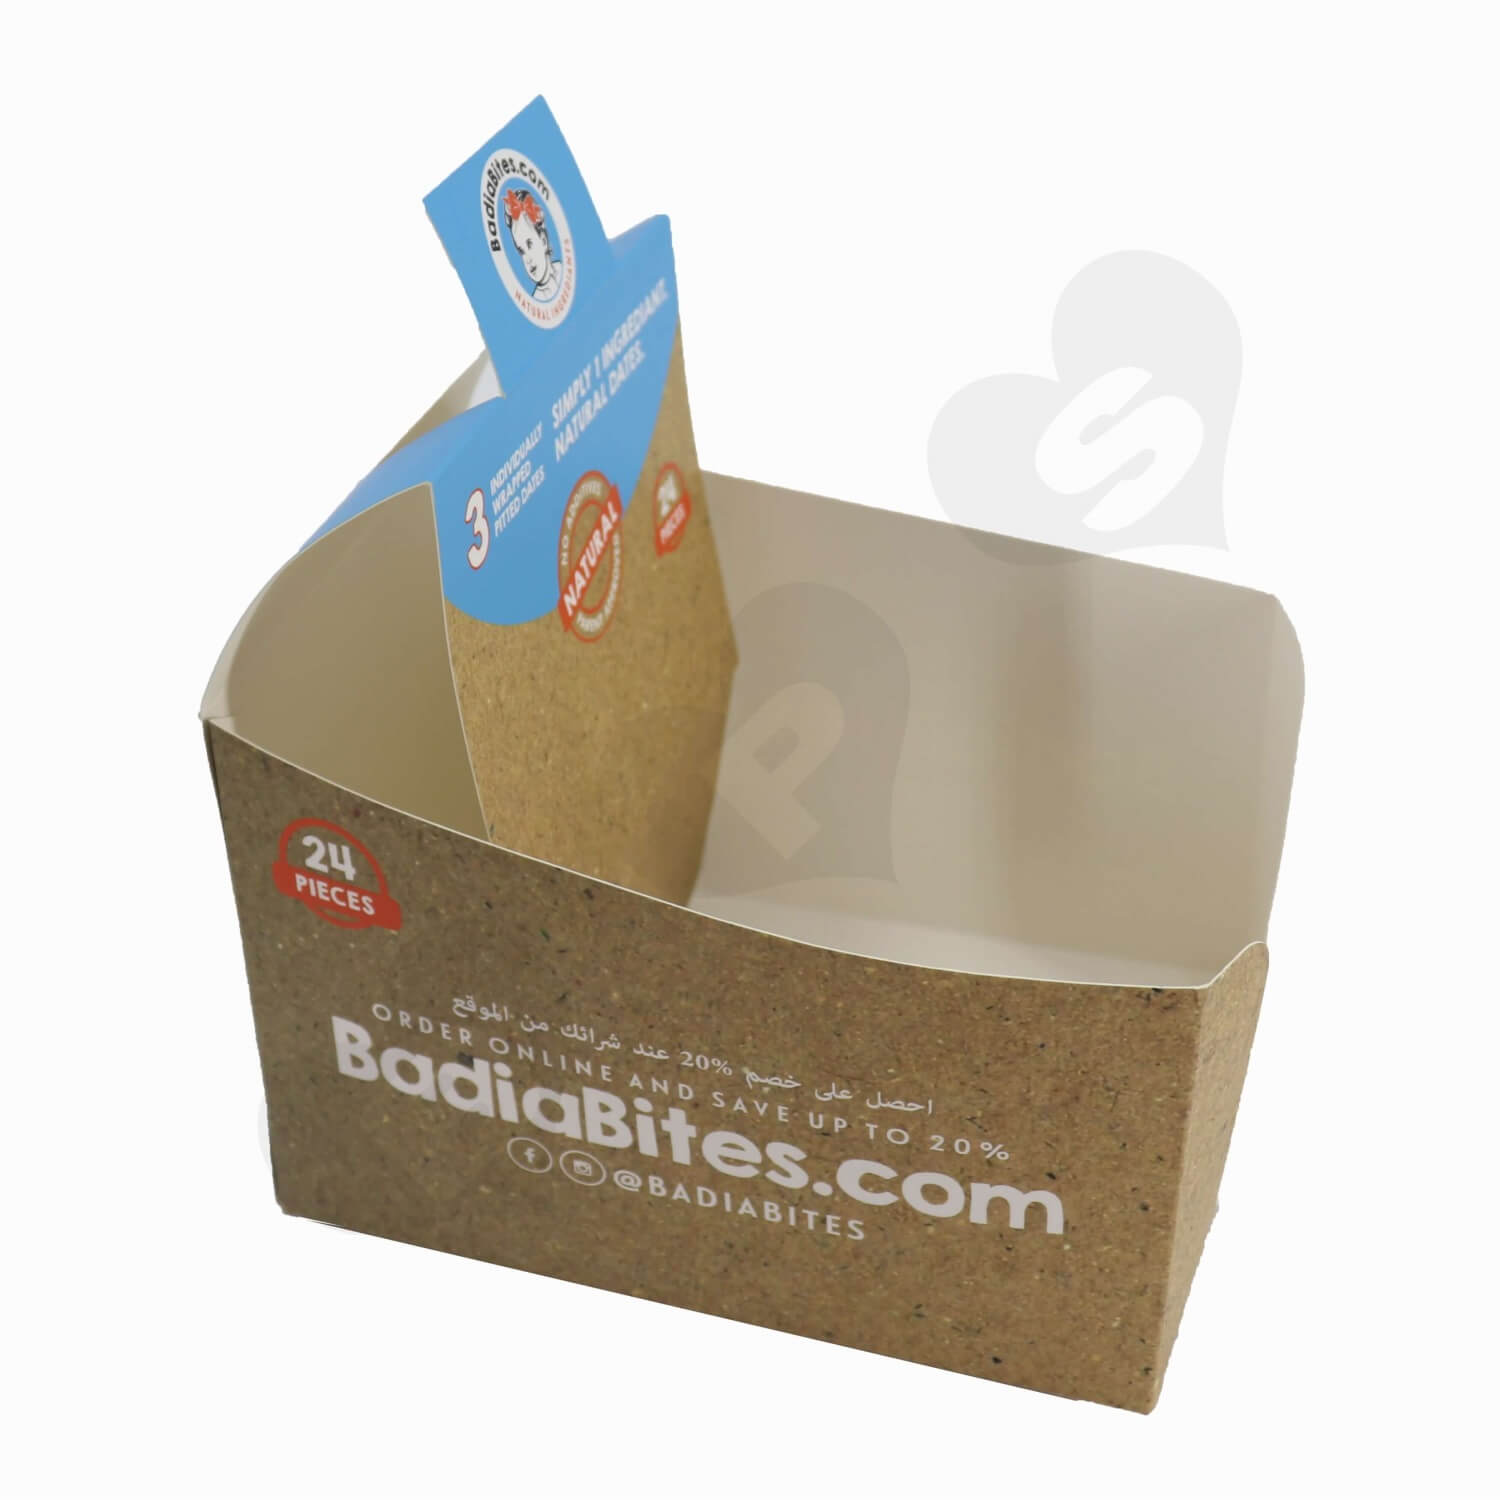 Paperboard Snack Box Displays side view two